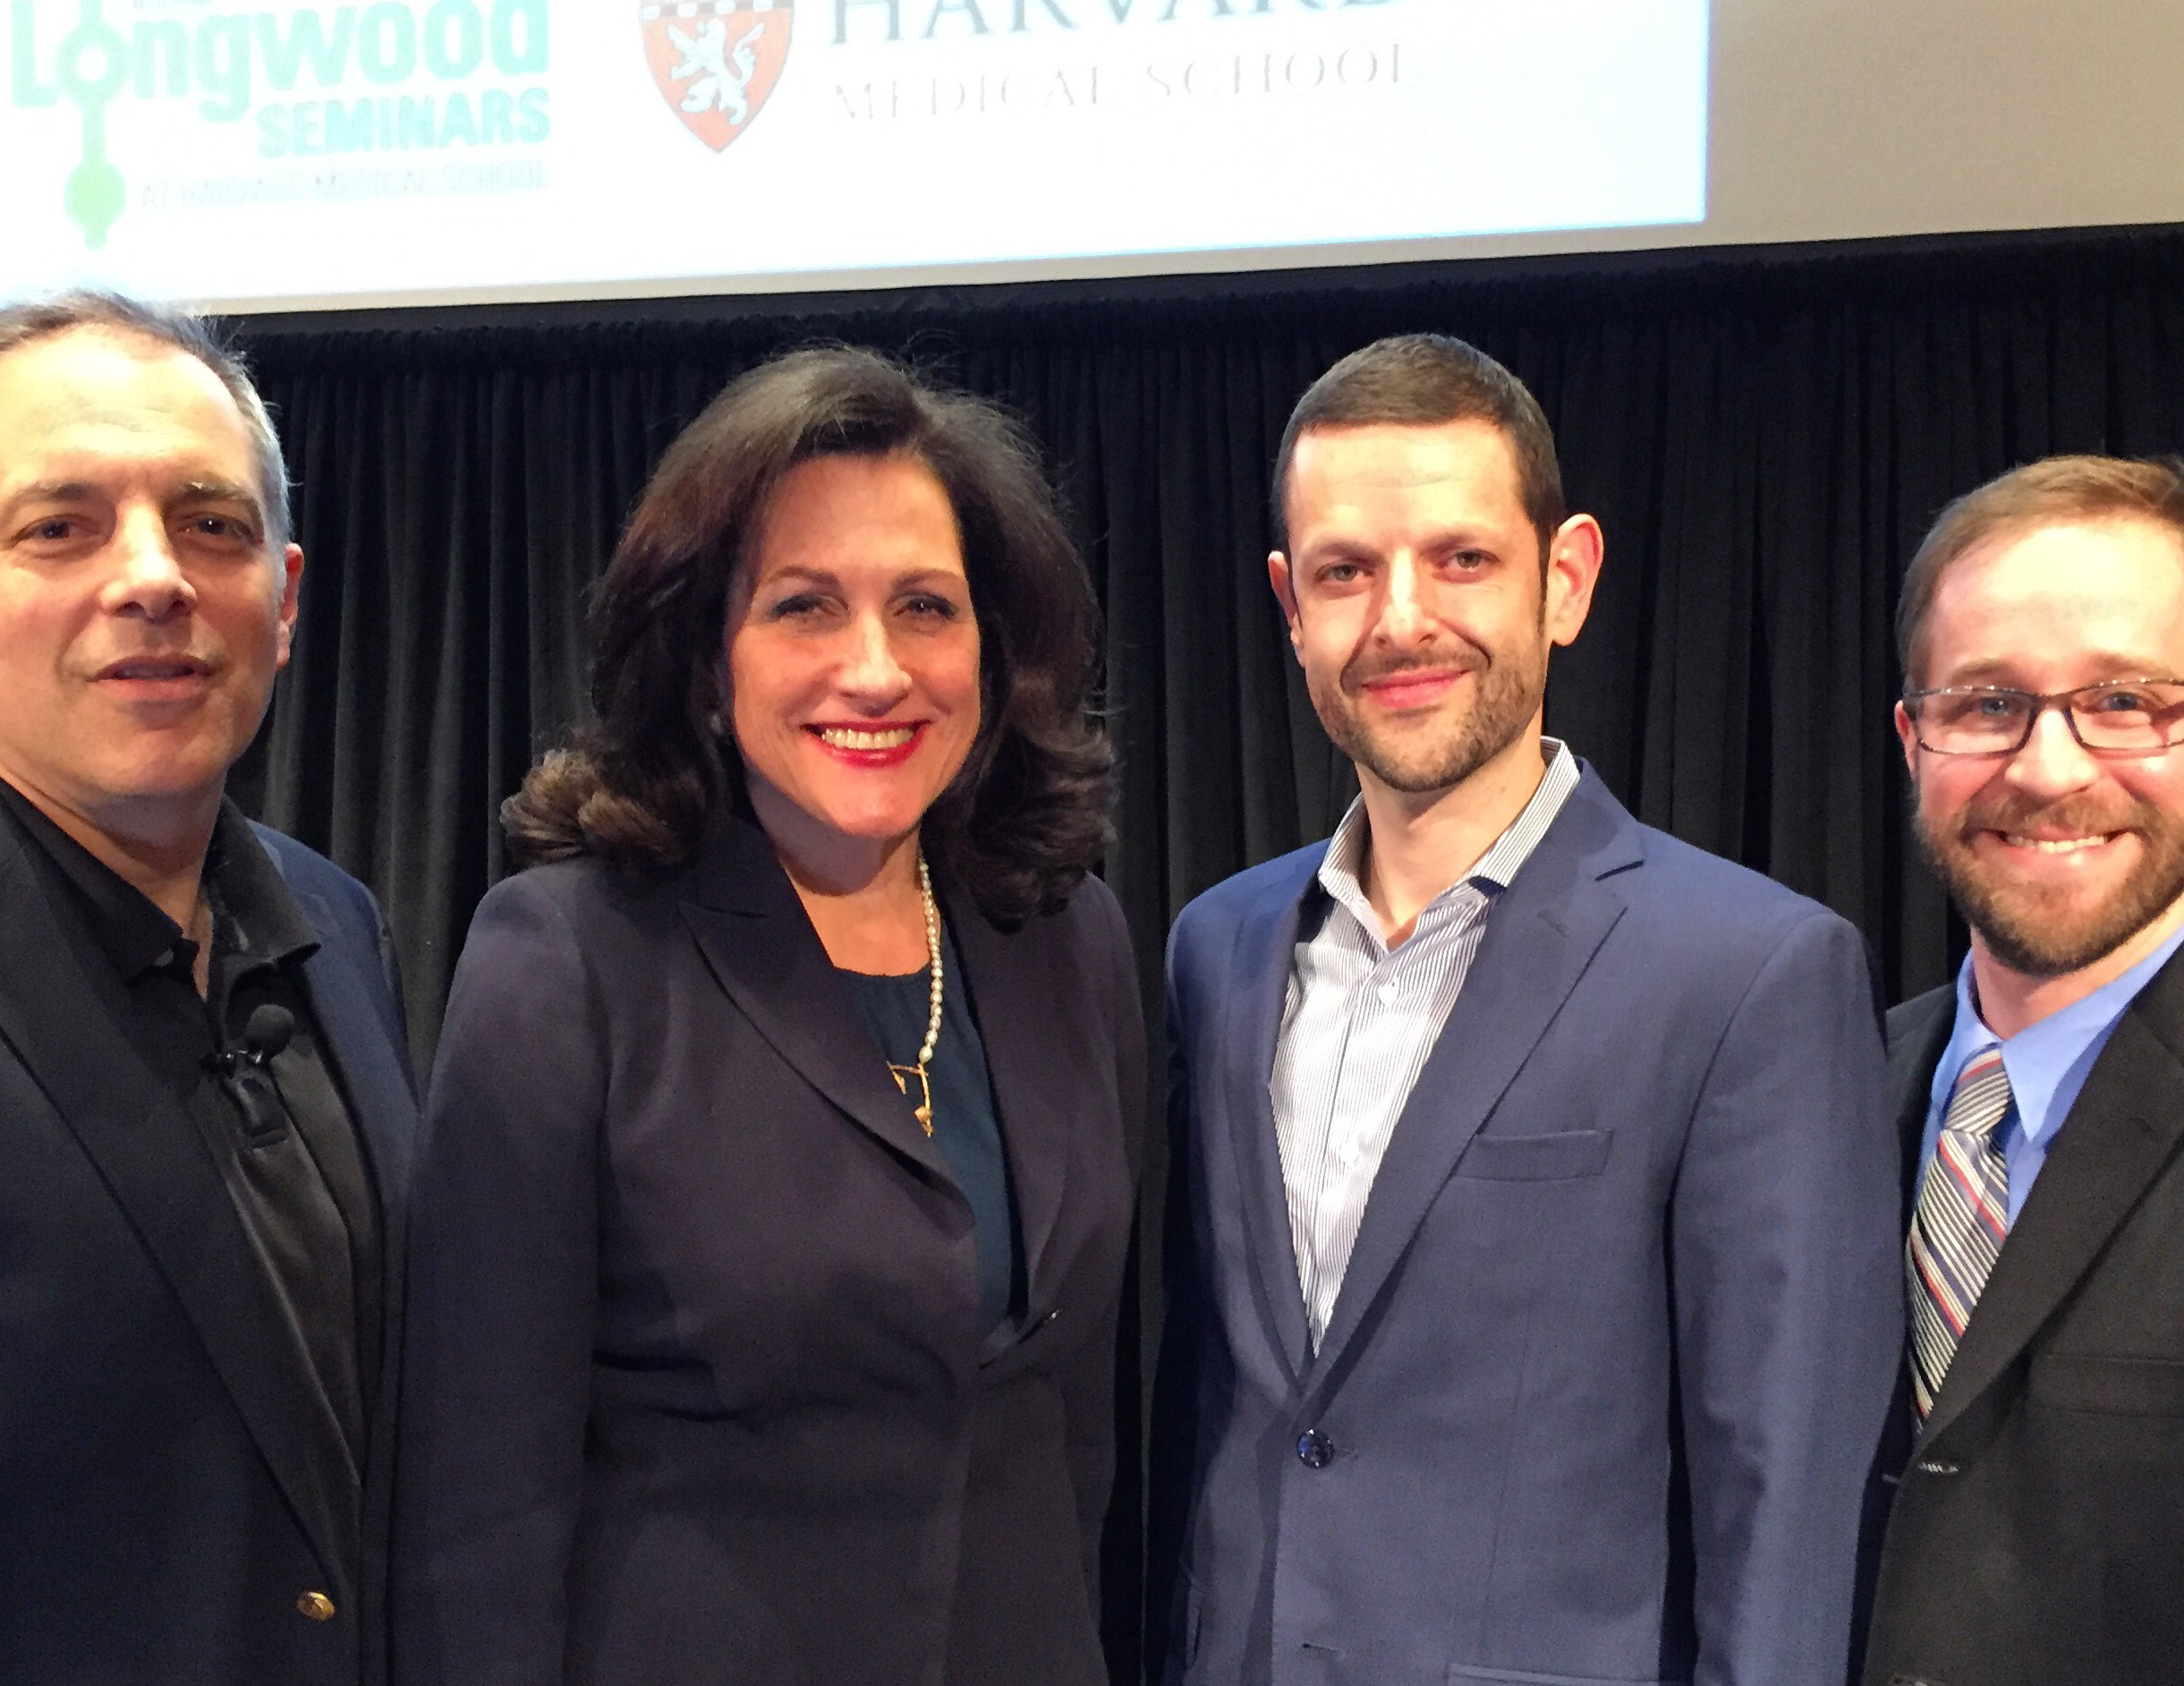 From left: Elazer Edelman; Gina Vild, Harvard Medical School chief communications officer, who welcomed attendees to the event; Jeff Karp and Conor Evans